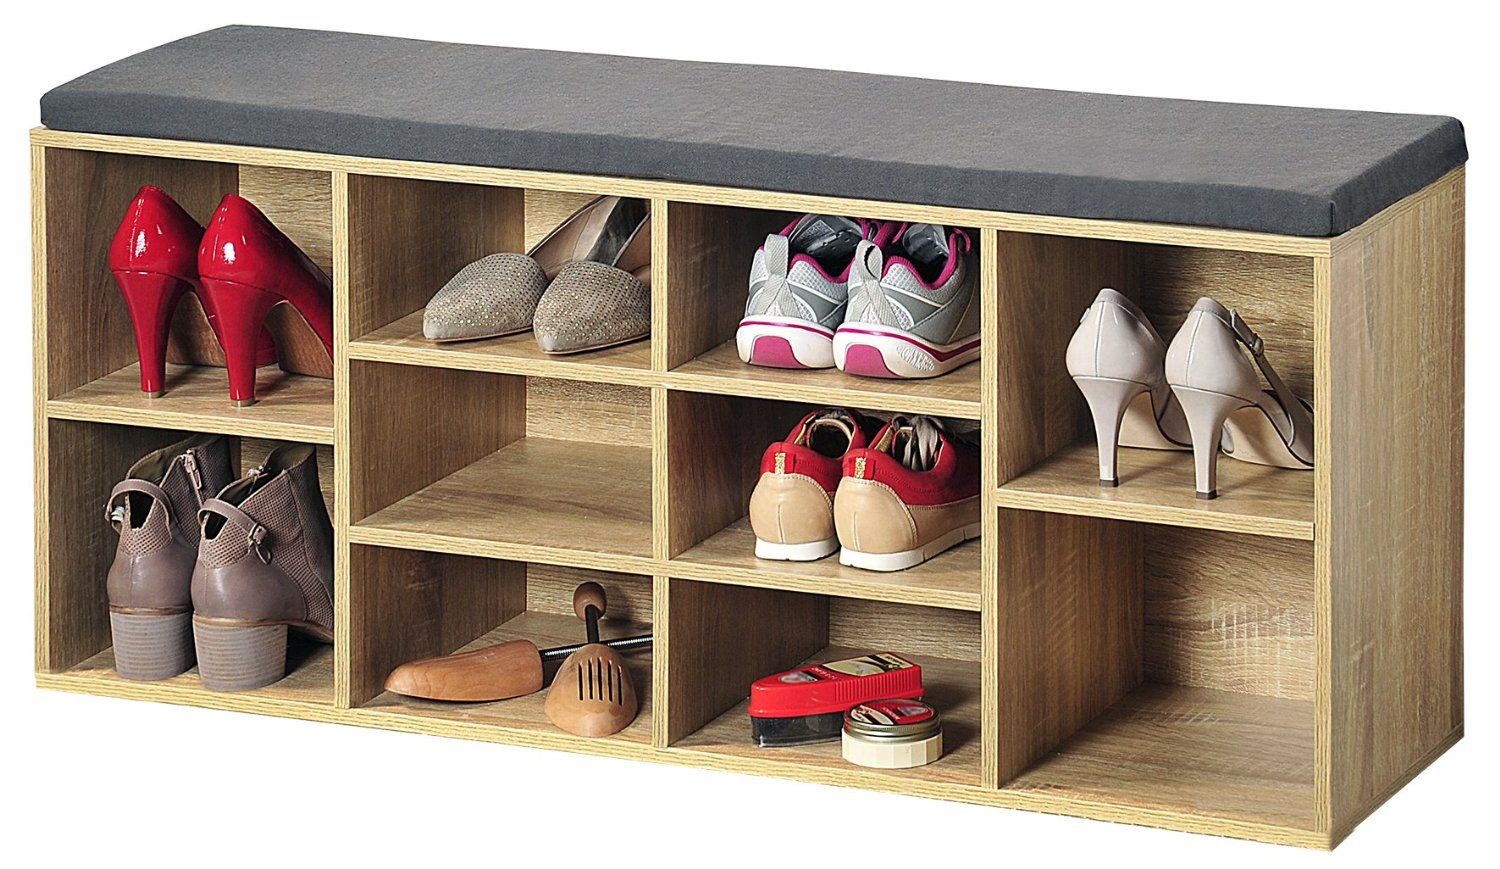 kesper banc de rangement chaussures avec coussin d. Black Bedroom Furniture Sets. Home Design Ideas